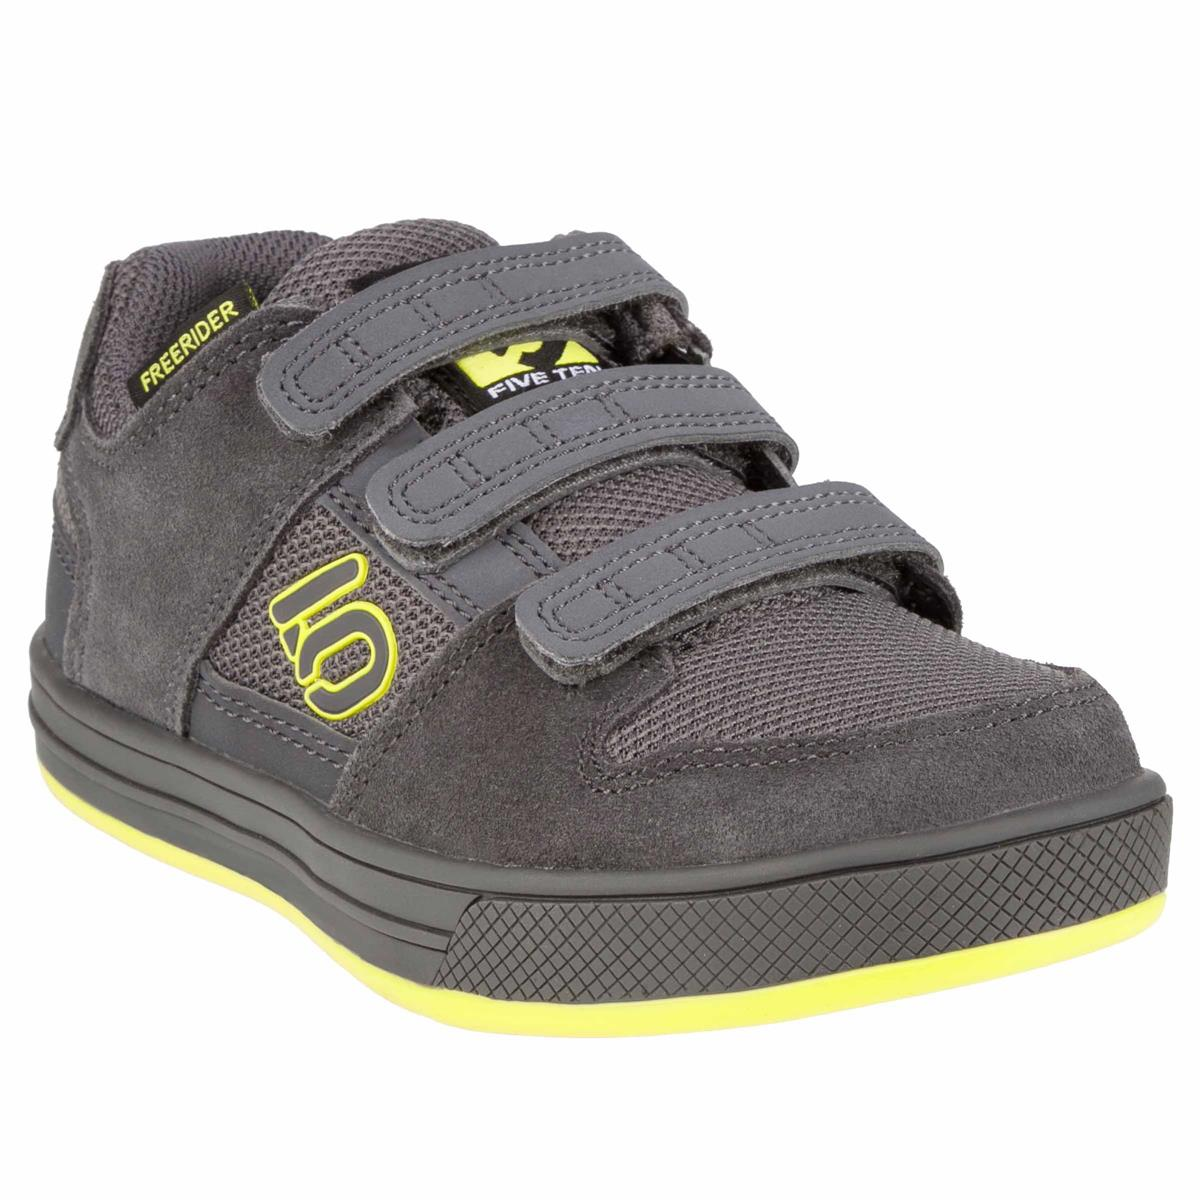 watch d77ce ececd Five Ten Kids MTB-Schuhe Freerider VCS Grey Six/Shock Yellow/Core Black